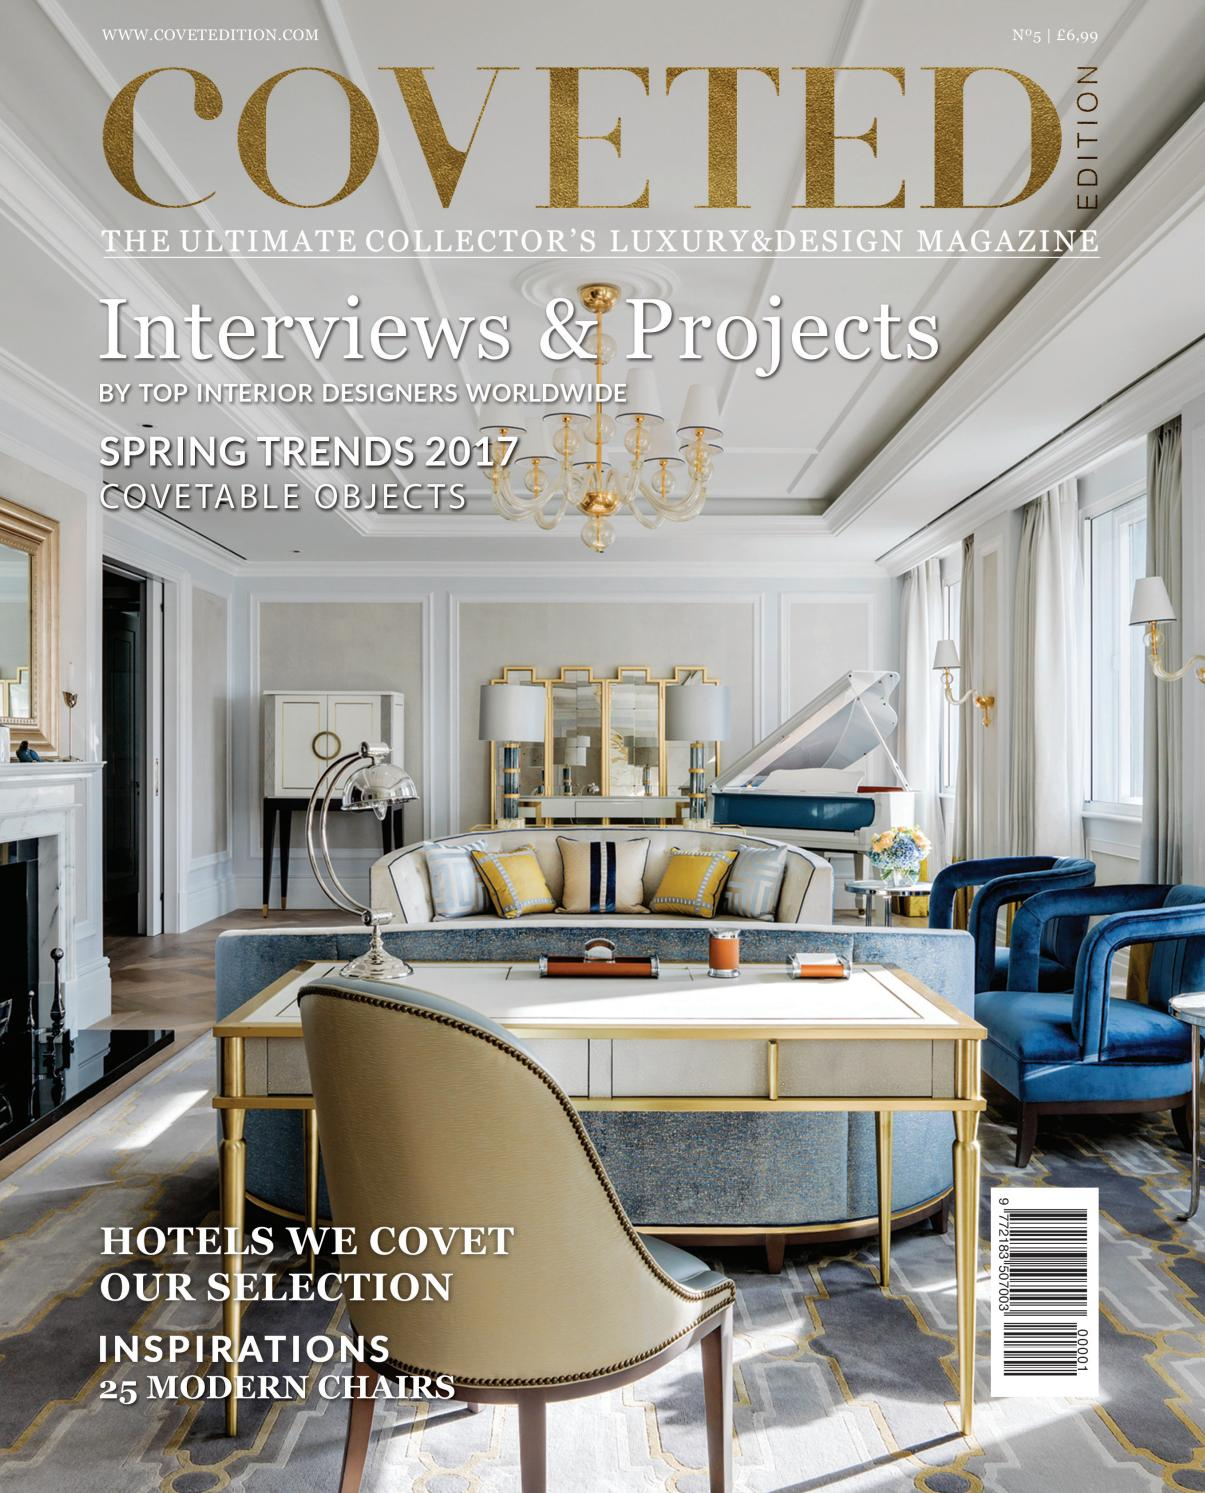 New Home Designs Latest Luxury Homes Interior Decoration: CovetED Magazine 05 By Covet Edition